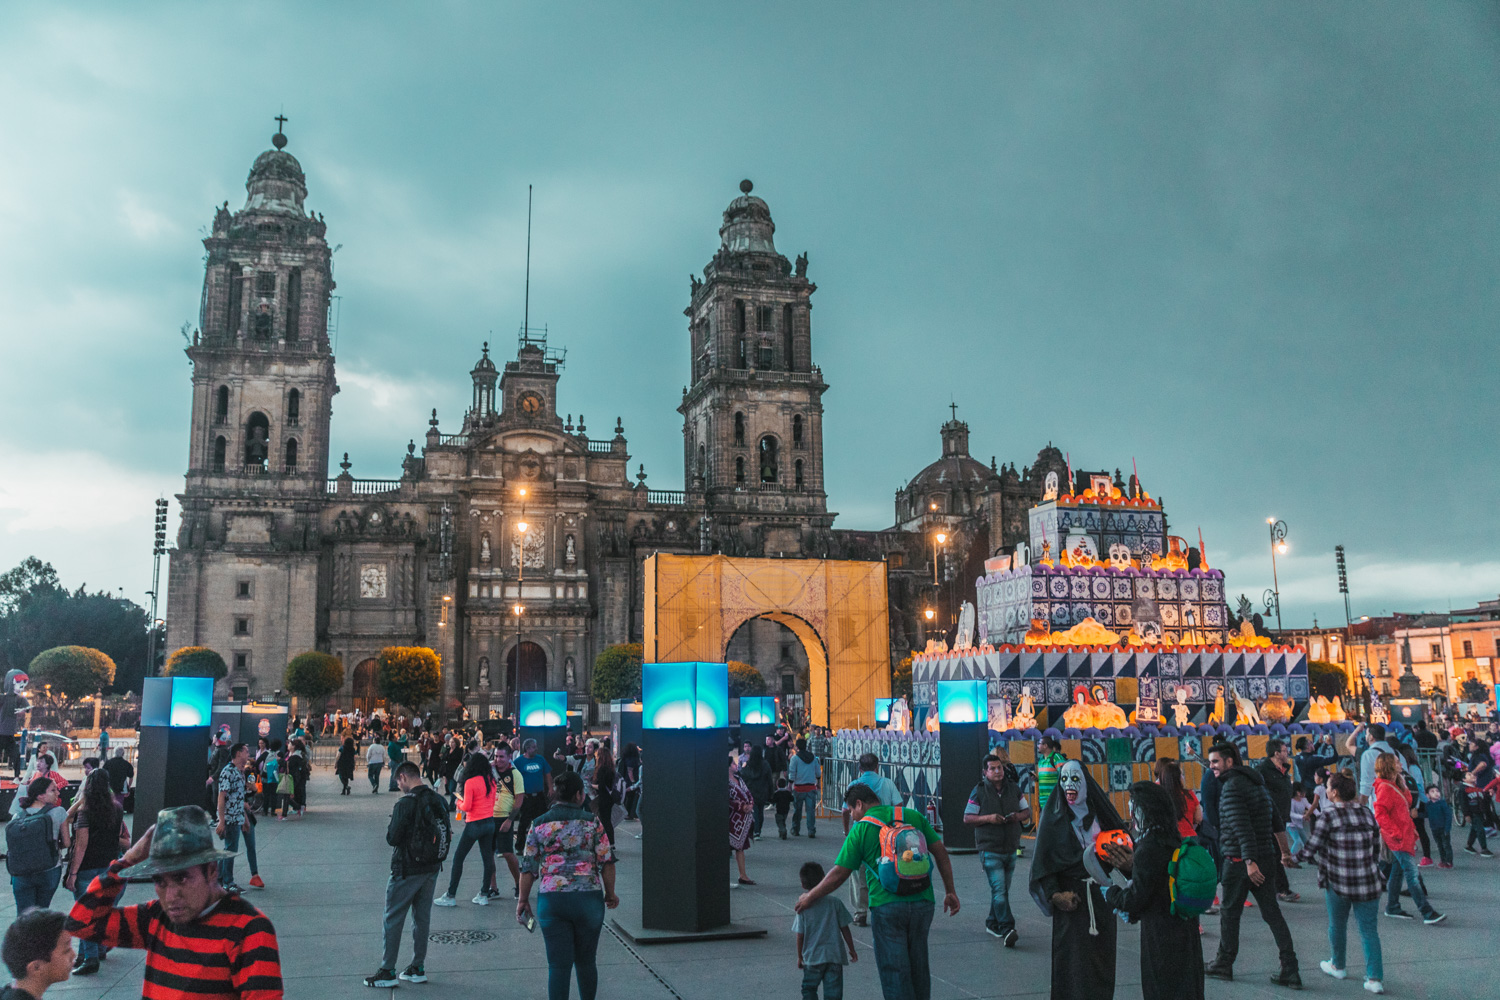 Zocalo during Day of the Dead // Mexico City Day of the Dead Parade // What to Do In Mexico City for Day of the Dead // www.readysetjetset.net #readysetjetset #mexicocity #dayofthedead #traveltips #blogtips